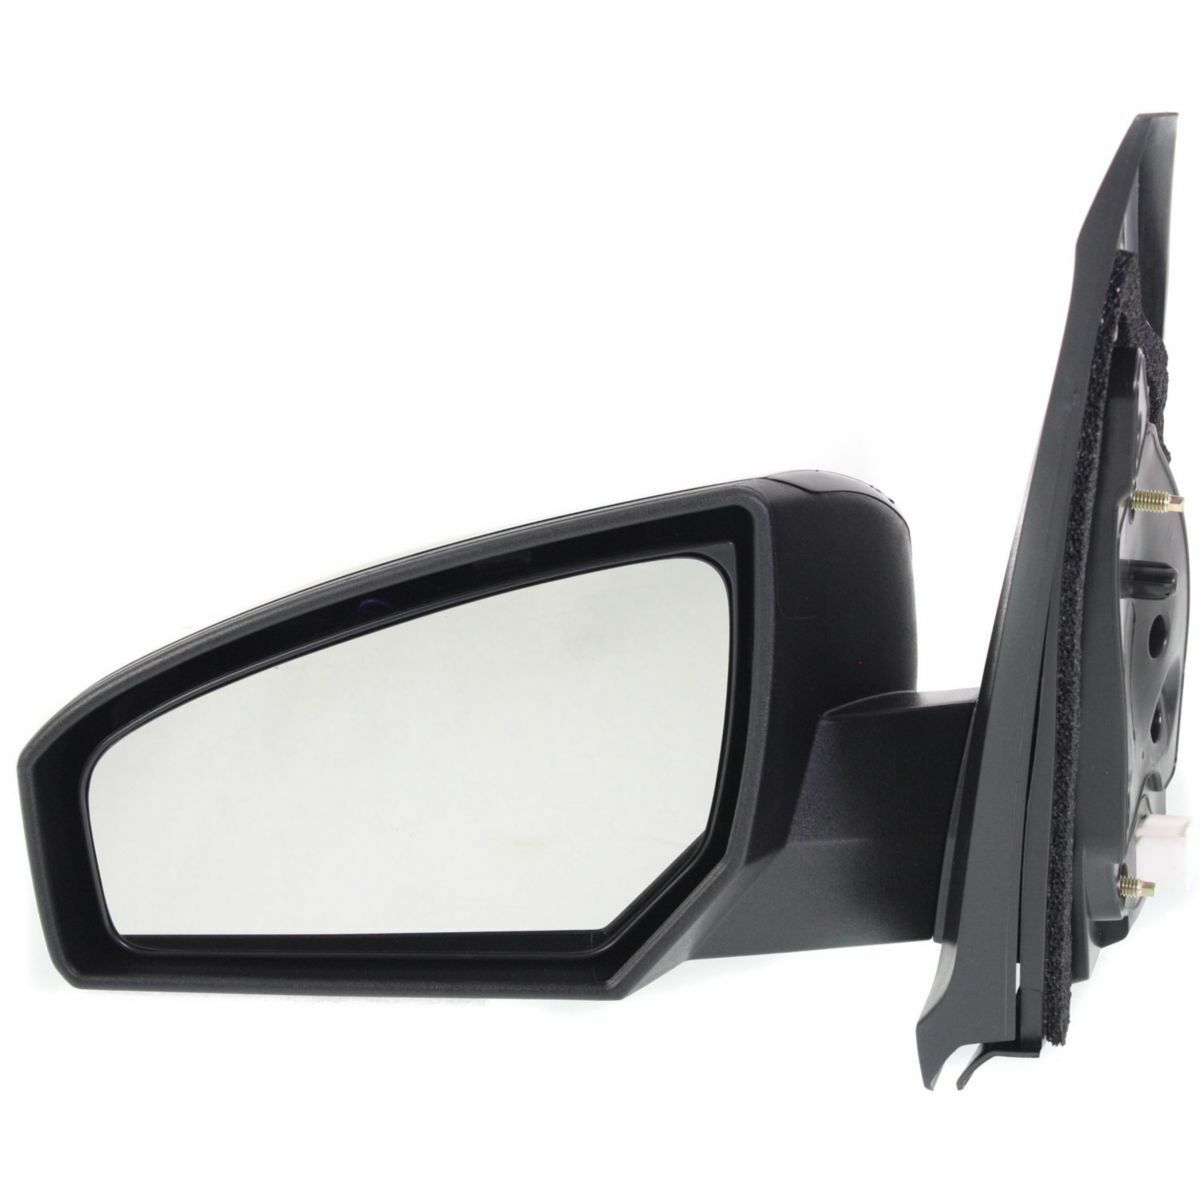 New Left Driver Side Non-Folding Door Mirror For Sedan Nissan Sentra 2007-2012